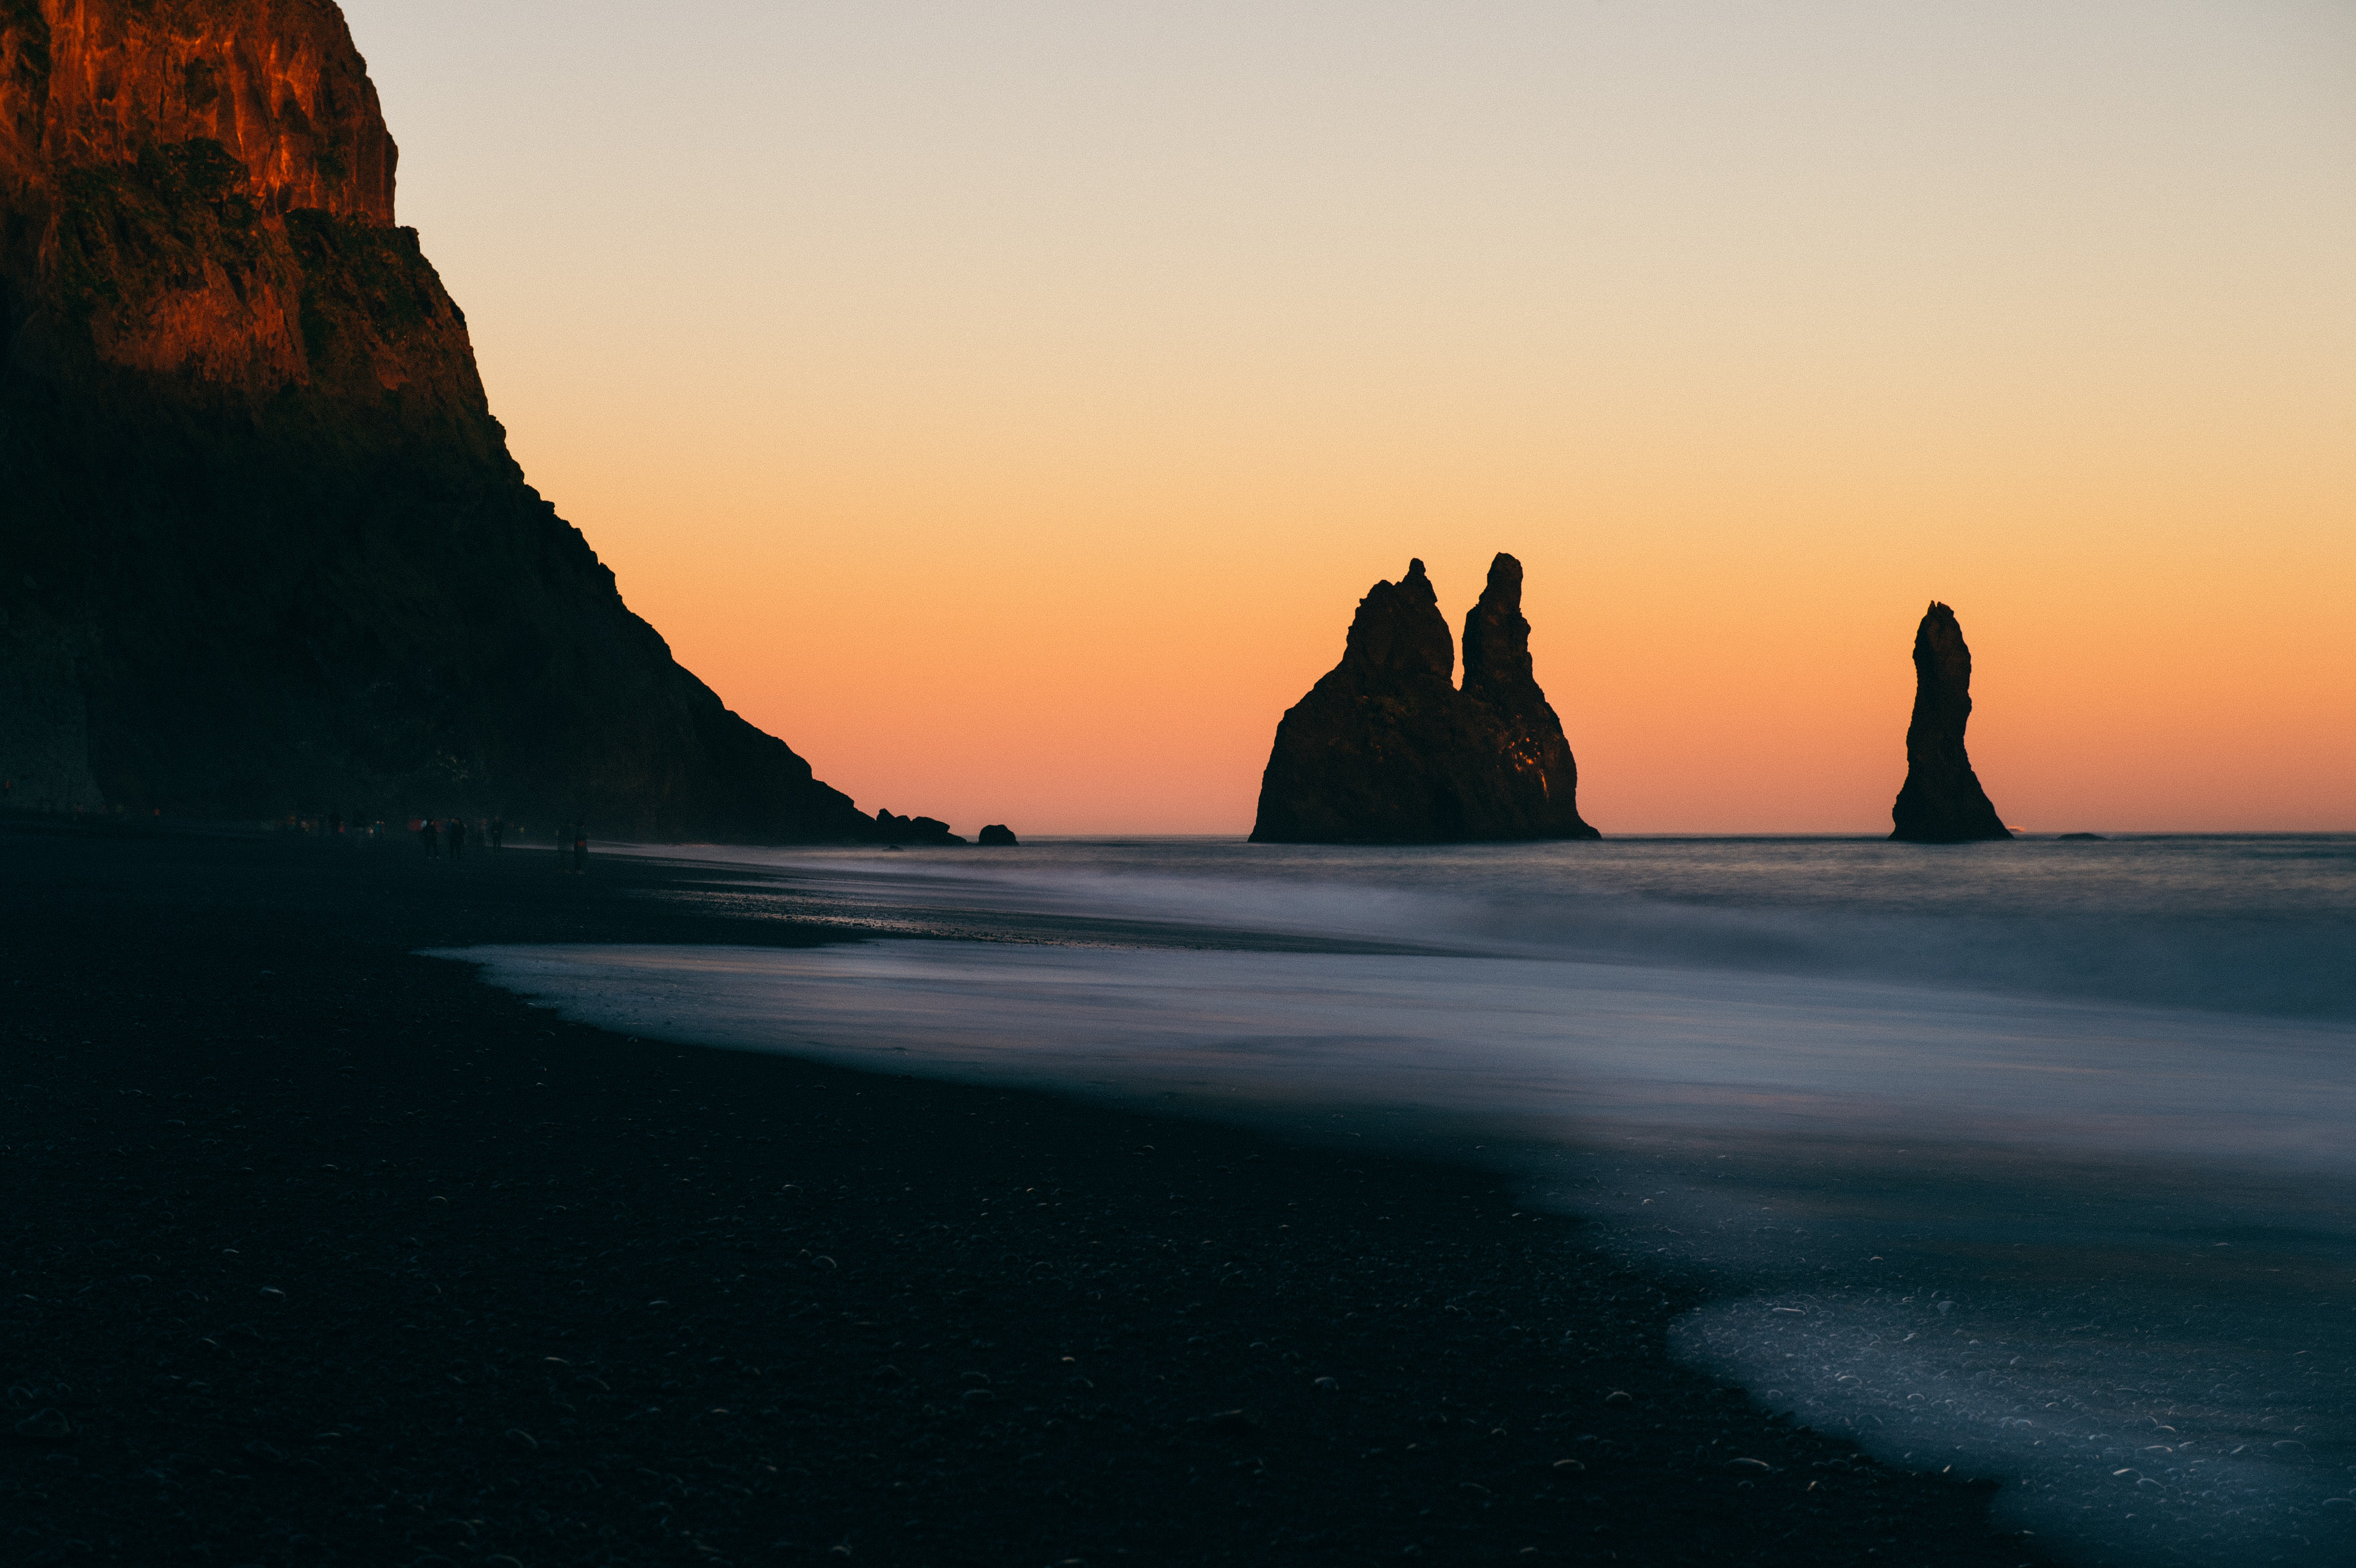 Silhouettes of rock formations in the ocean in Vik